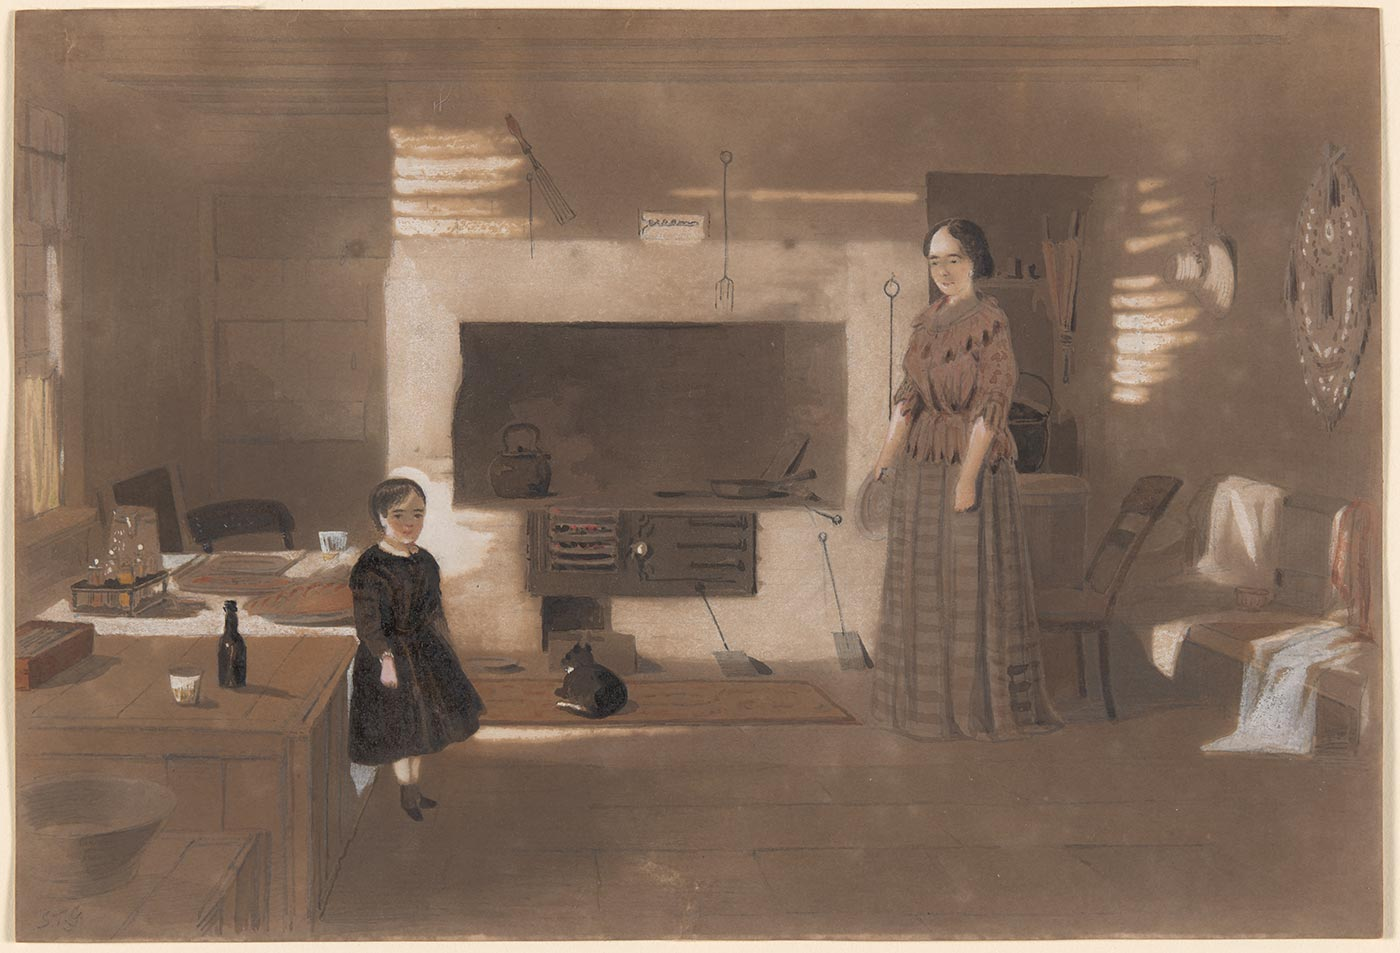 A watercolour painting in greys, browns and white depicting a woman and a child standing in a kitchen. In the background is a stove with a cat lying in front of it. Handwritten in pencil in the bottom left hand corner is 'S.T.G.'. - click to view larger image